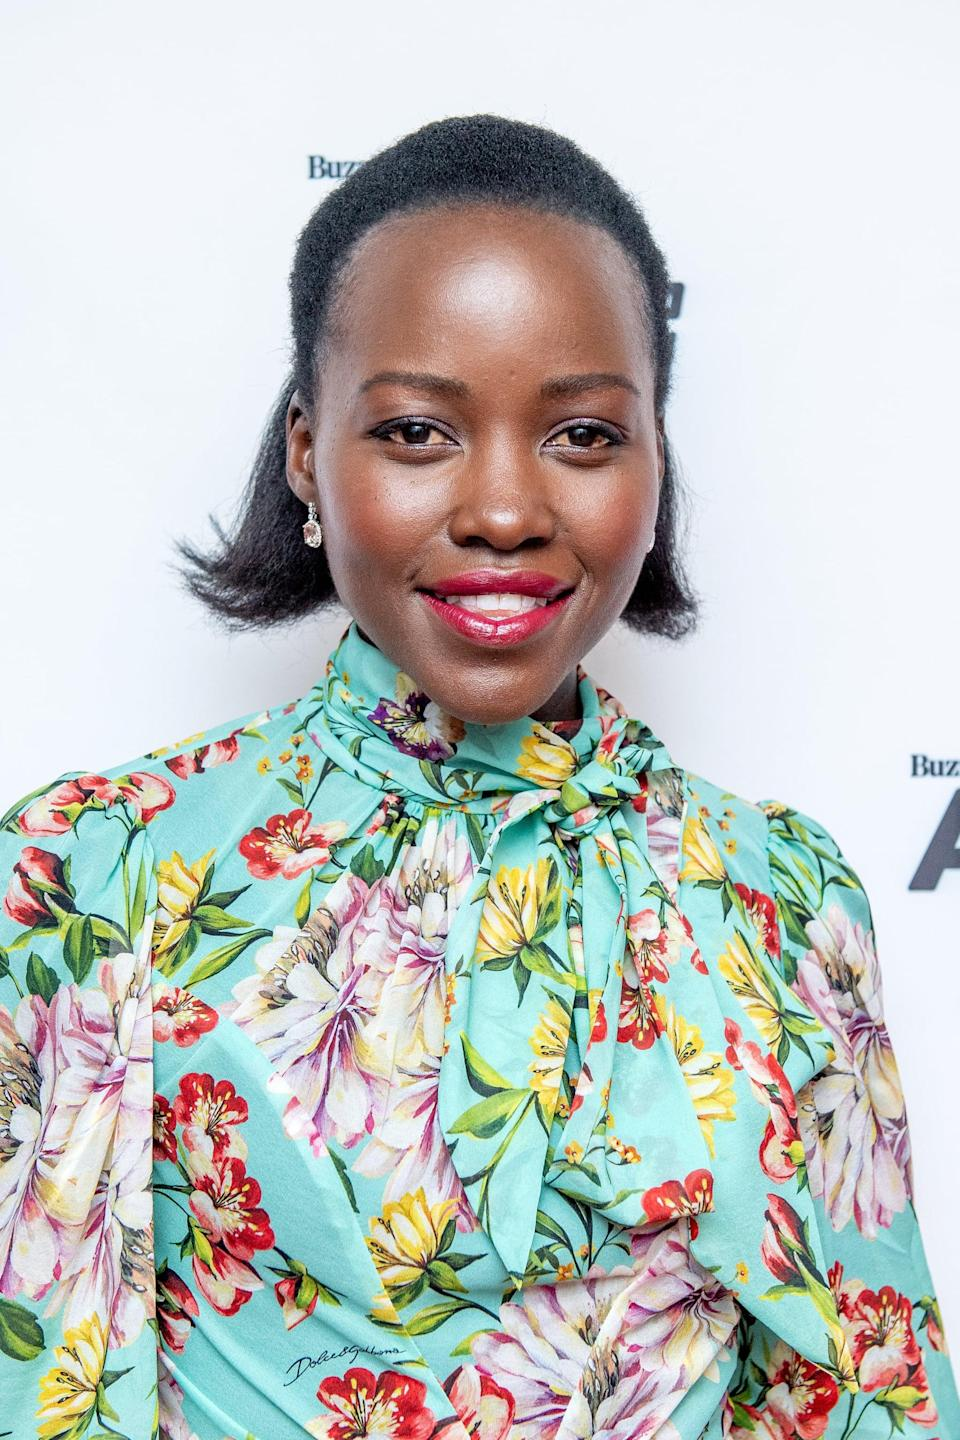 <p>Oscar winner Nyong'o is slated to reprise her role as Nakia, the Wakandan spy who shares a romantic connection with T'Challa. Her Marvel role isn't Nyong'o's only major franchise: she also plays Maz Kanata (via voice acting and motion capture) in the Star Wars sequel trilogy and related media.</p>